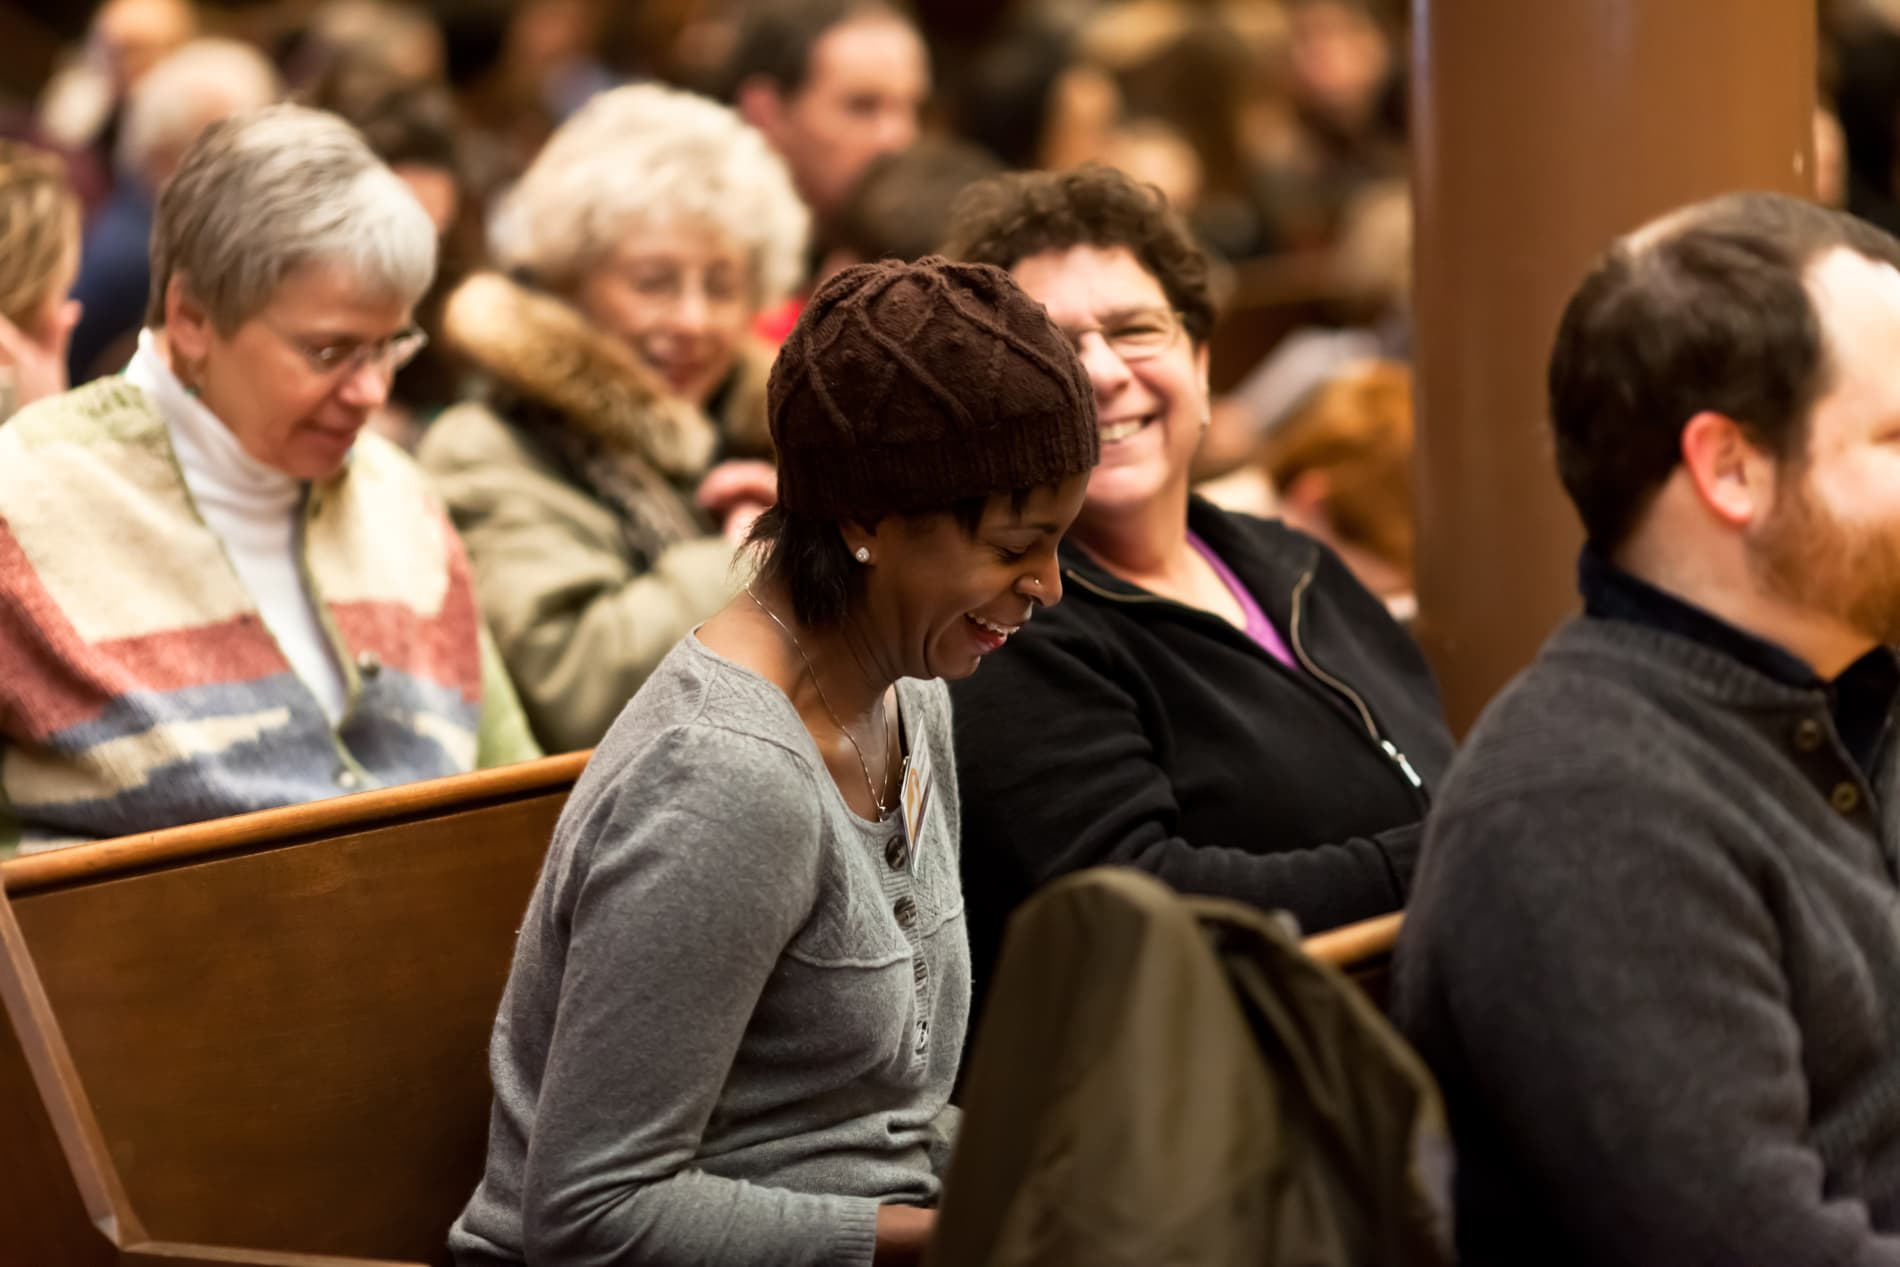 Two women sit in a pew and laugh